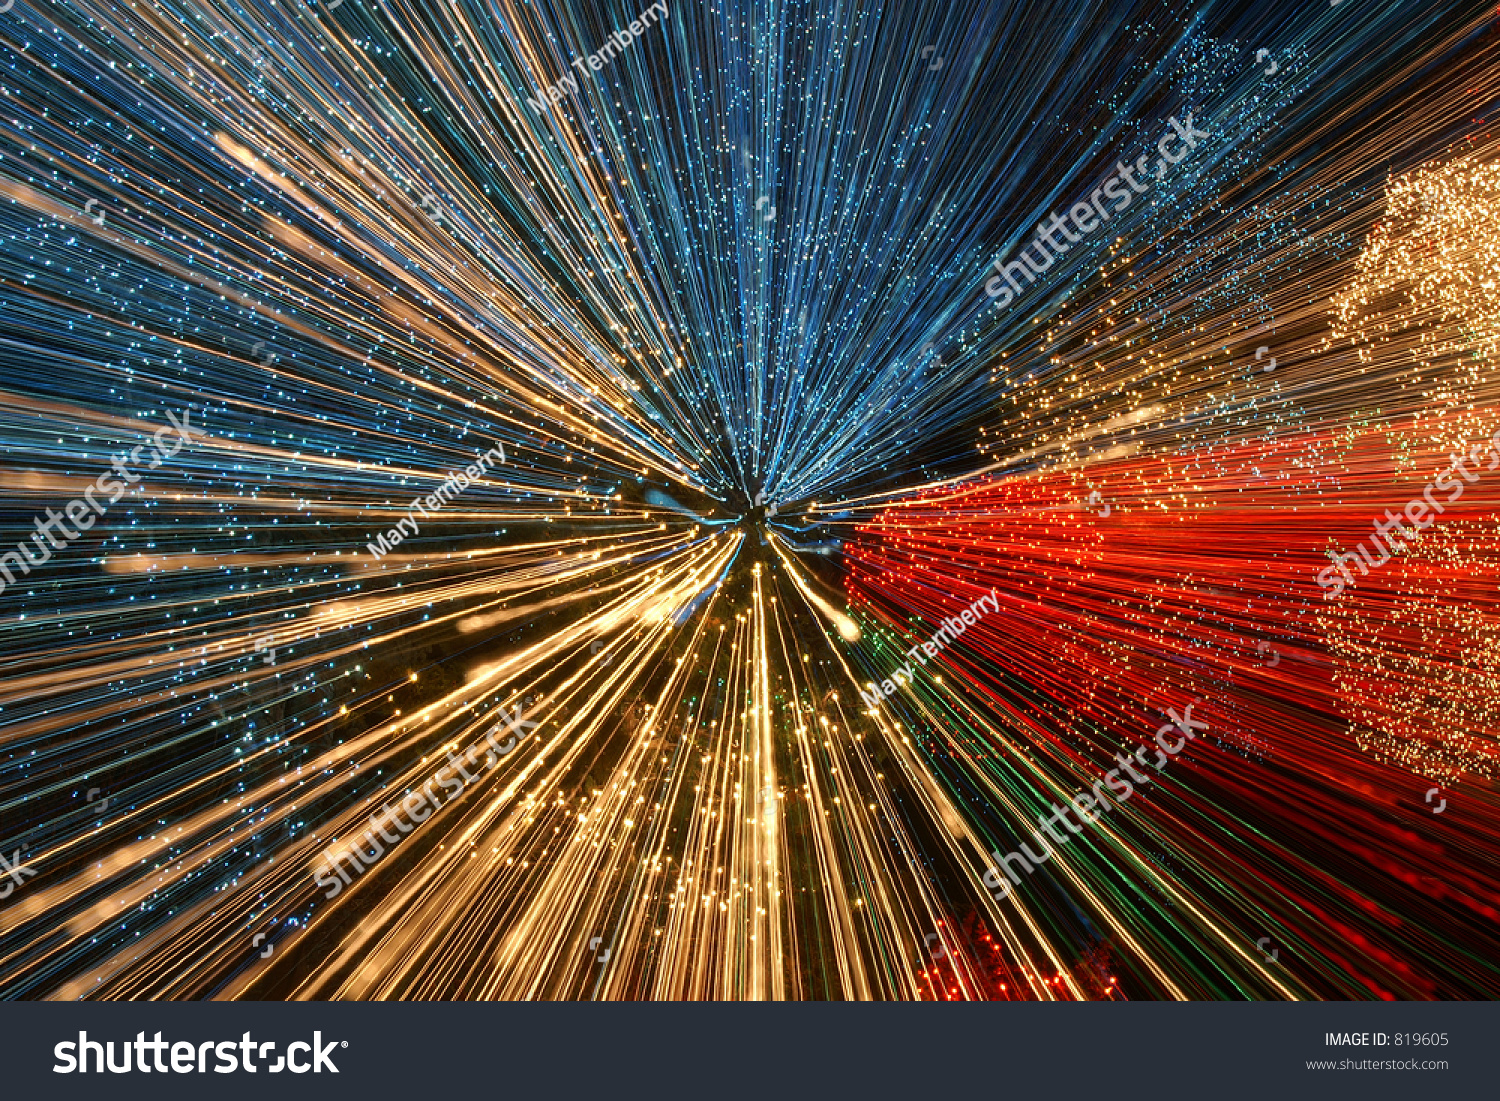 Holiday Lights In Abstract Slow Shutter >> Christmas Lights Zooming During Slow Shutter Stock Photo Edit Now